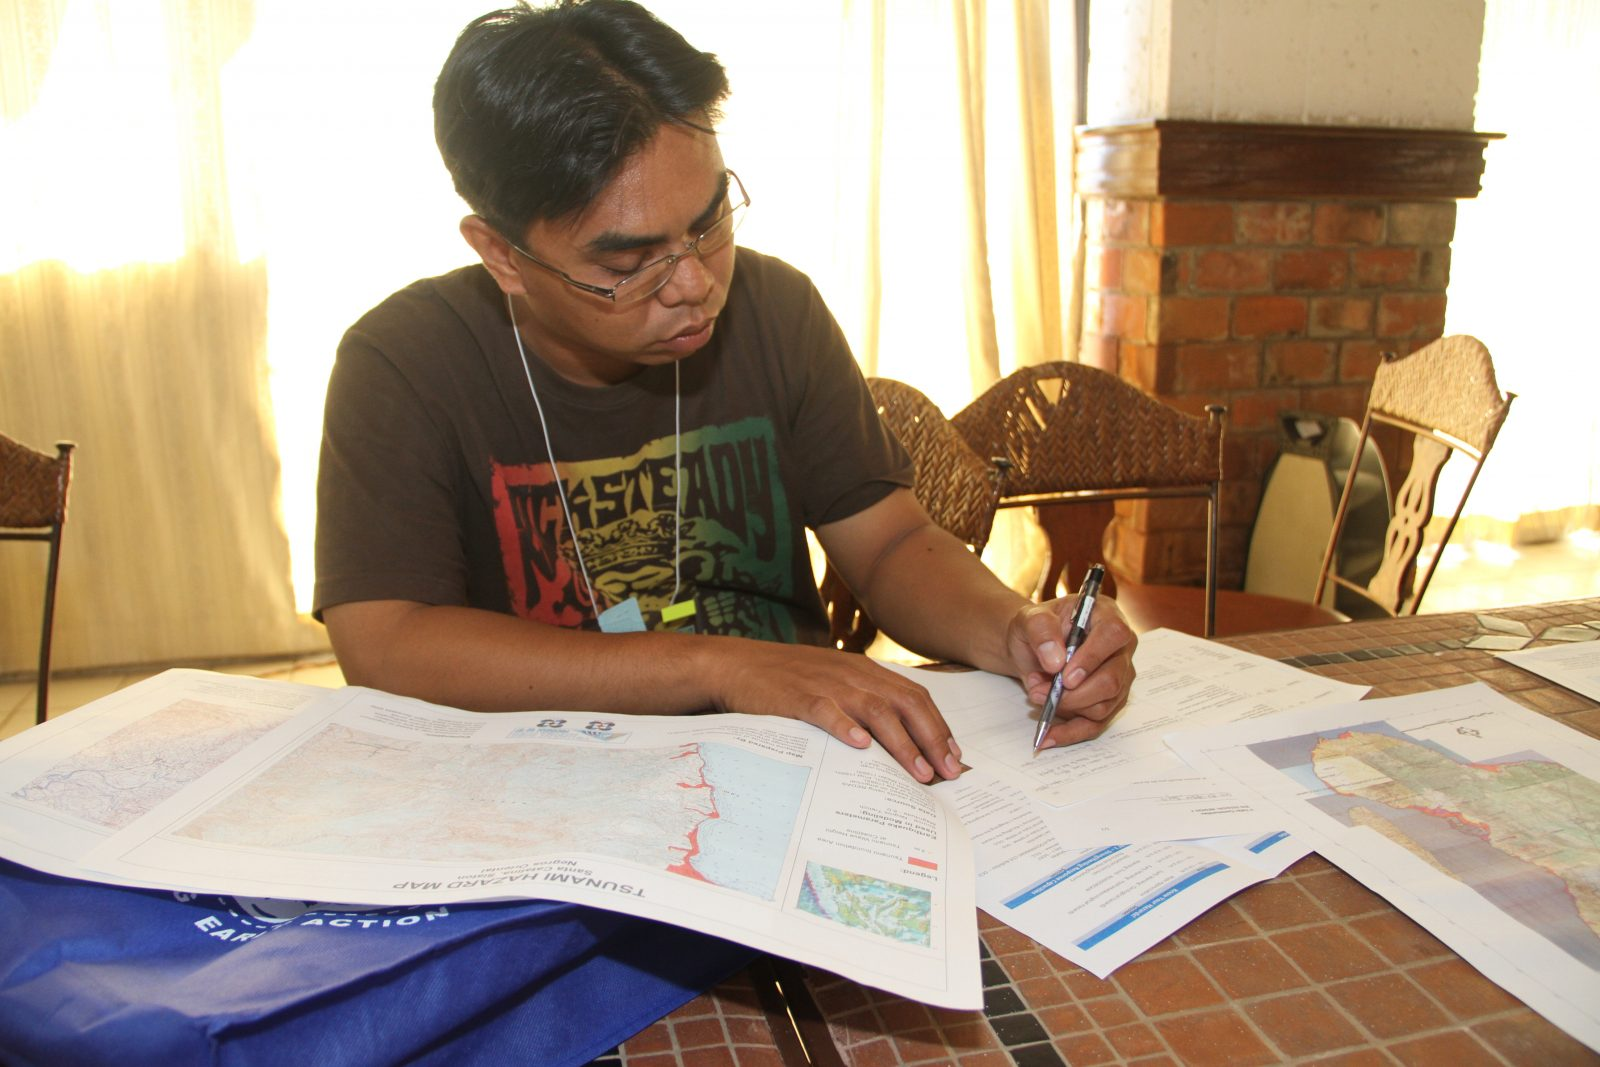 A member of the Negros Oriental delegation uses a tsunami hazard map during a workshop.